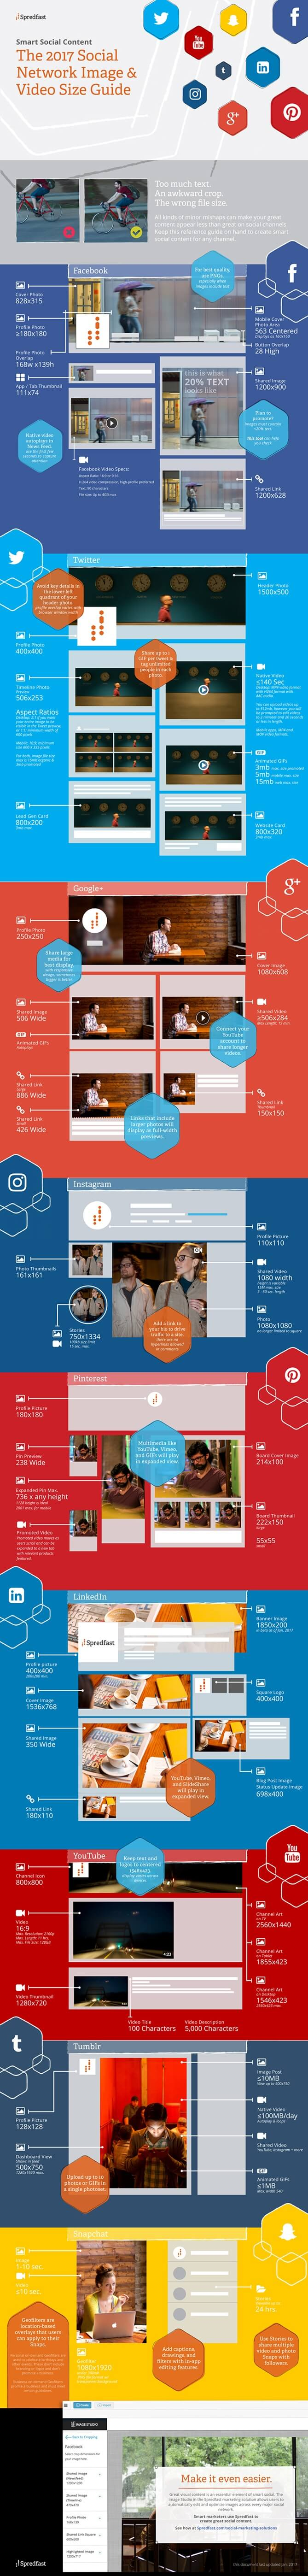 2017 Social Media Image Size Infographic